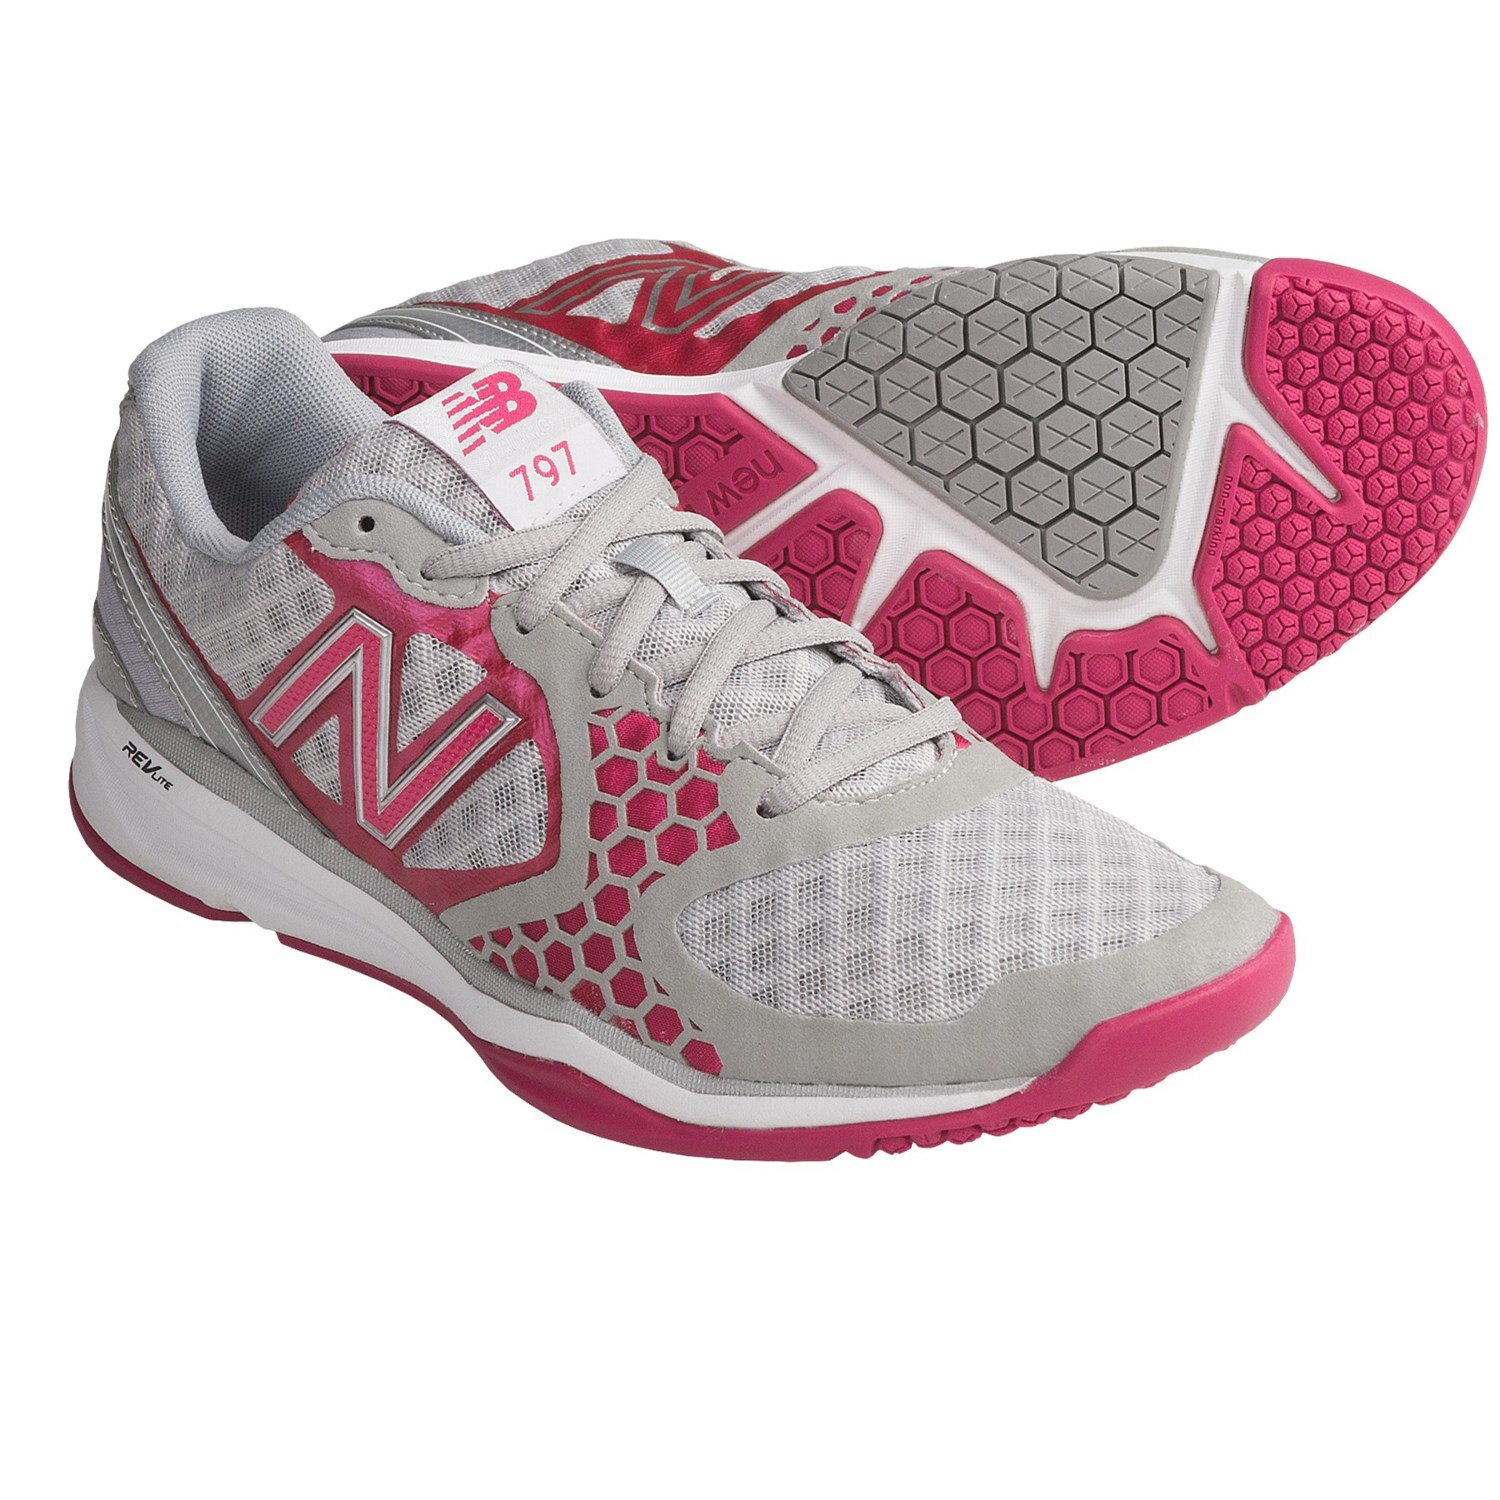 New Balance 797 Cross Training Shoes (For Women) in Silver/Diva Pink